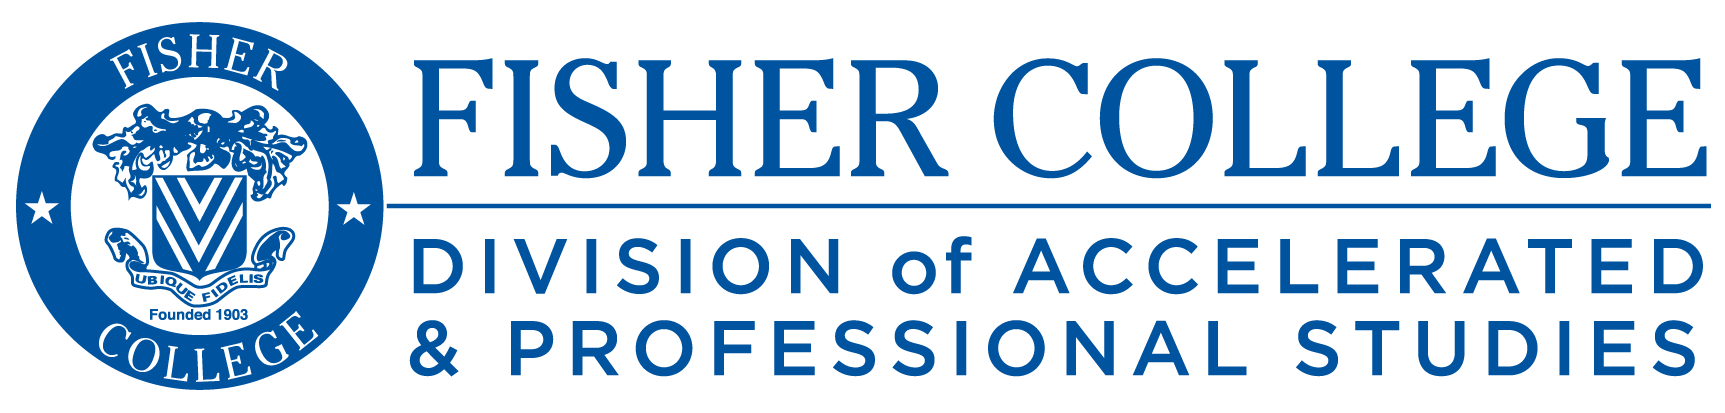 Fisher College - Division of Accelerated and Professional Studies